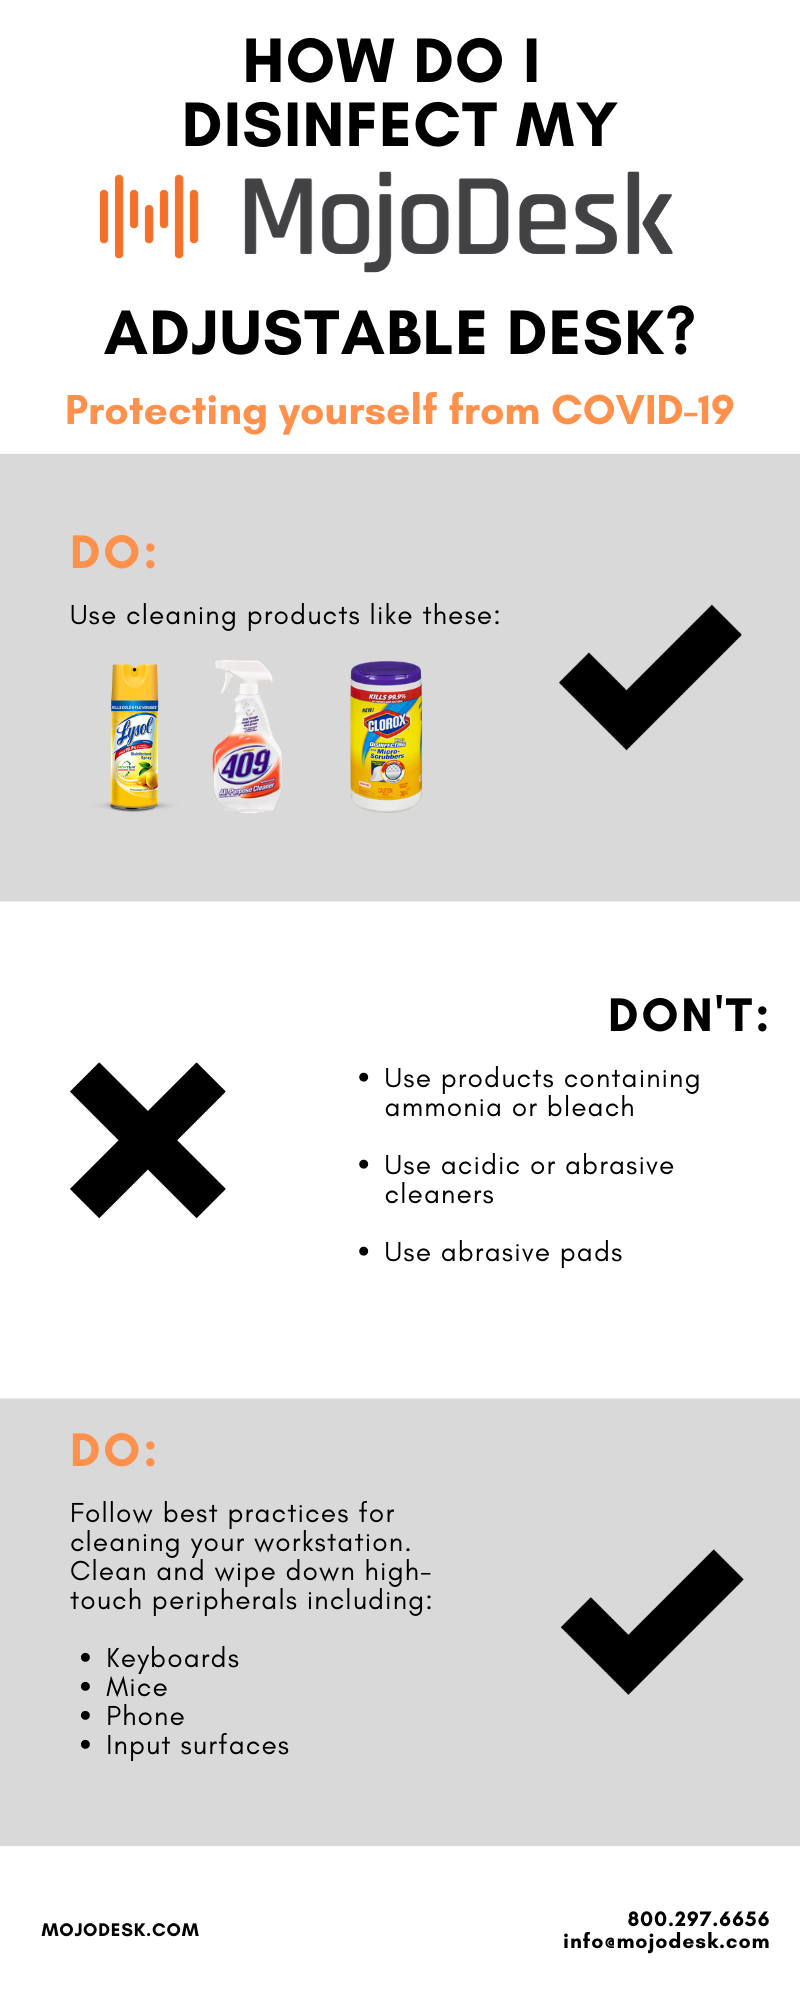 Cleaning Disinfecting MojoDesk Guide COVID19